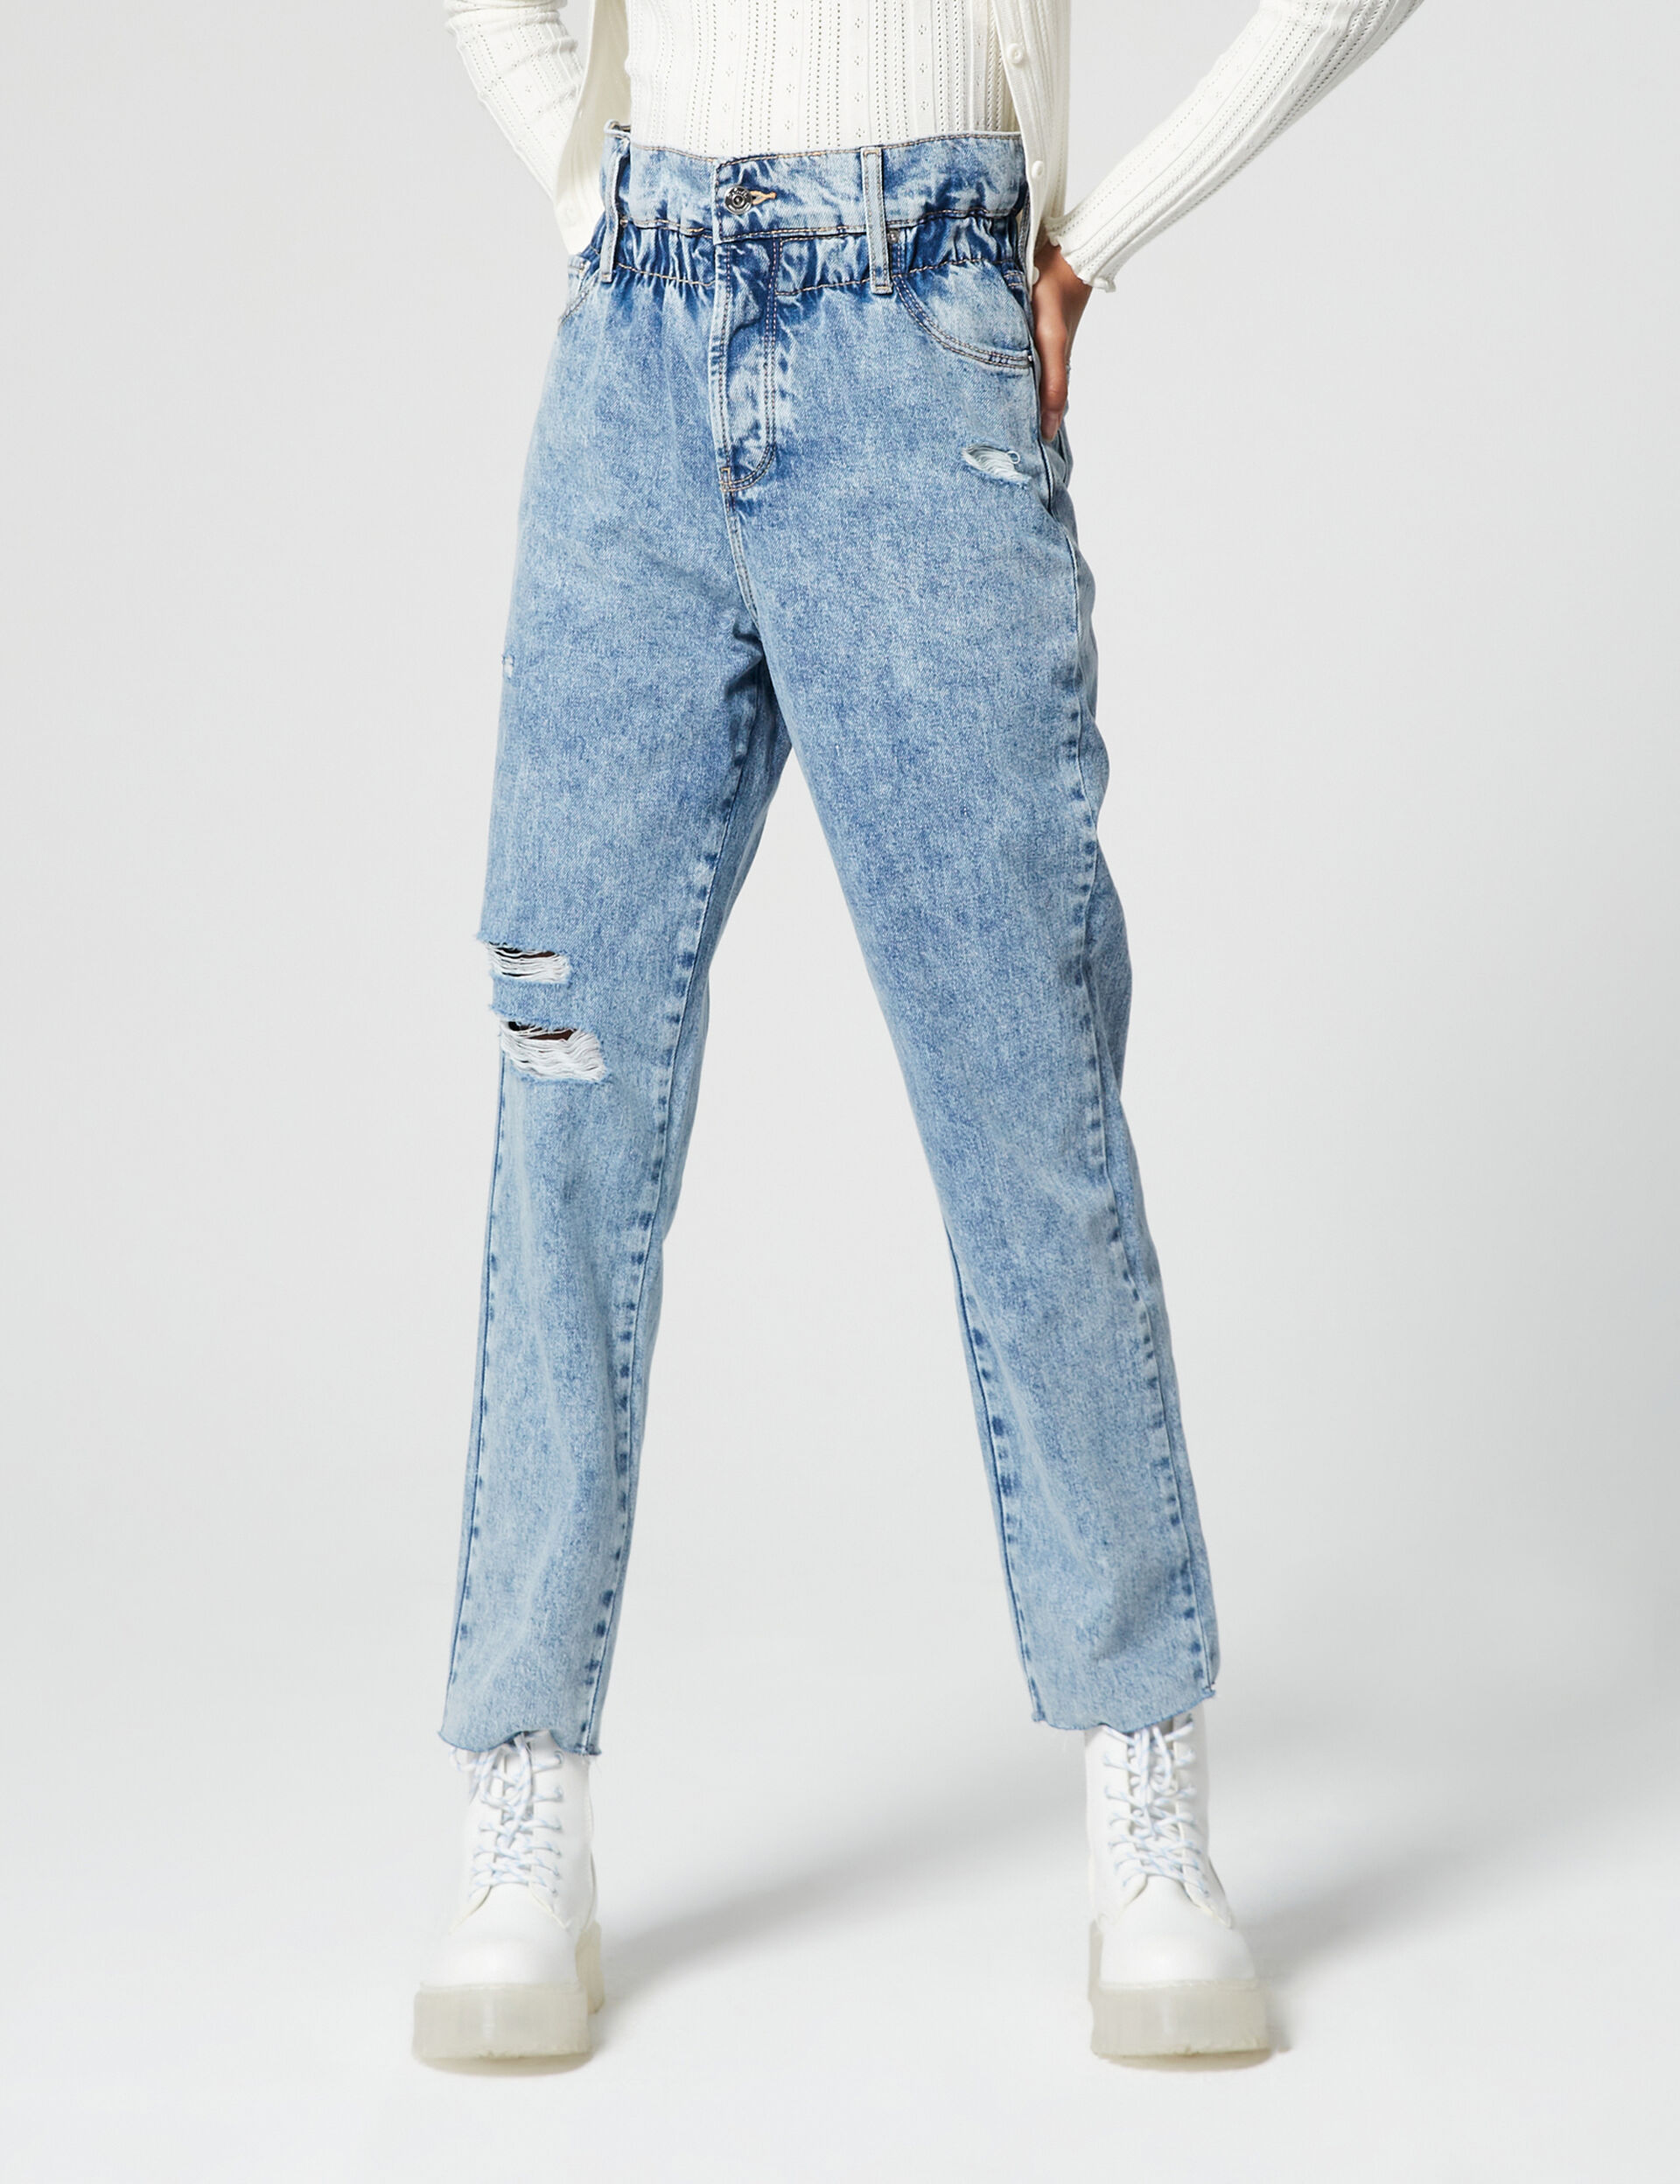 High-waisted paper bag jeans